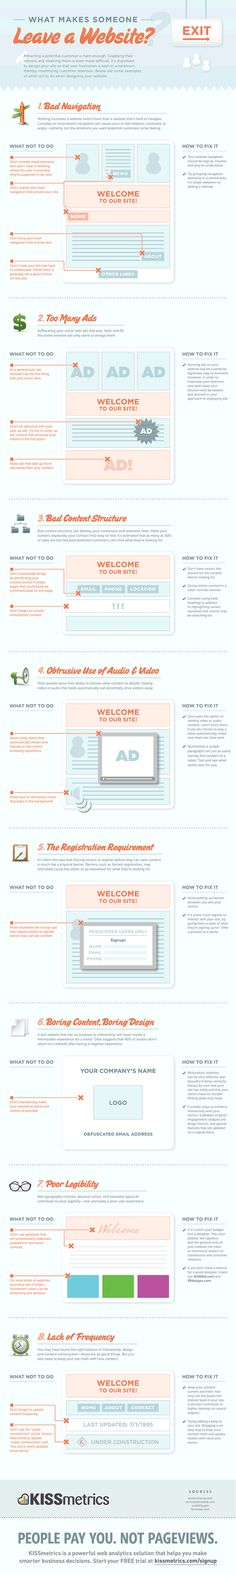 18 Reasons Why People Leave Your Website [Infographic]